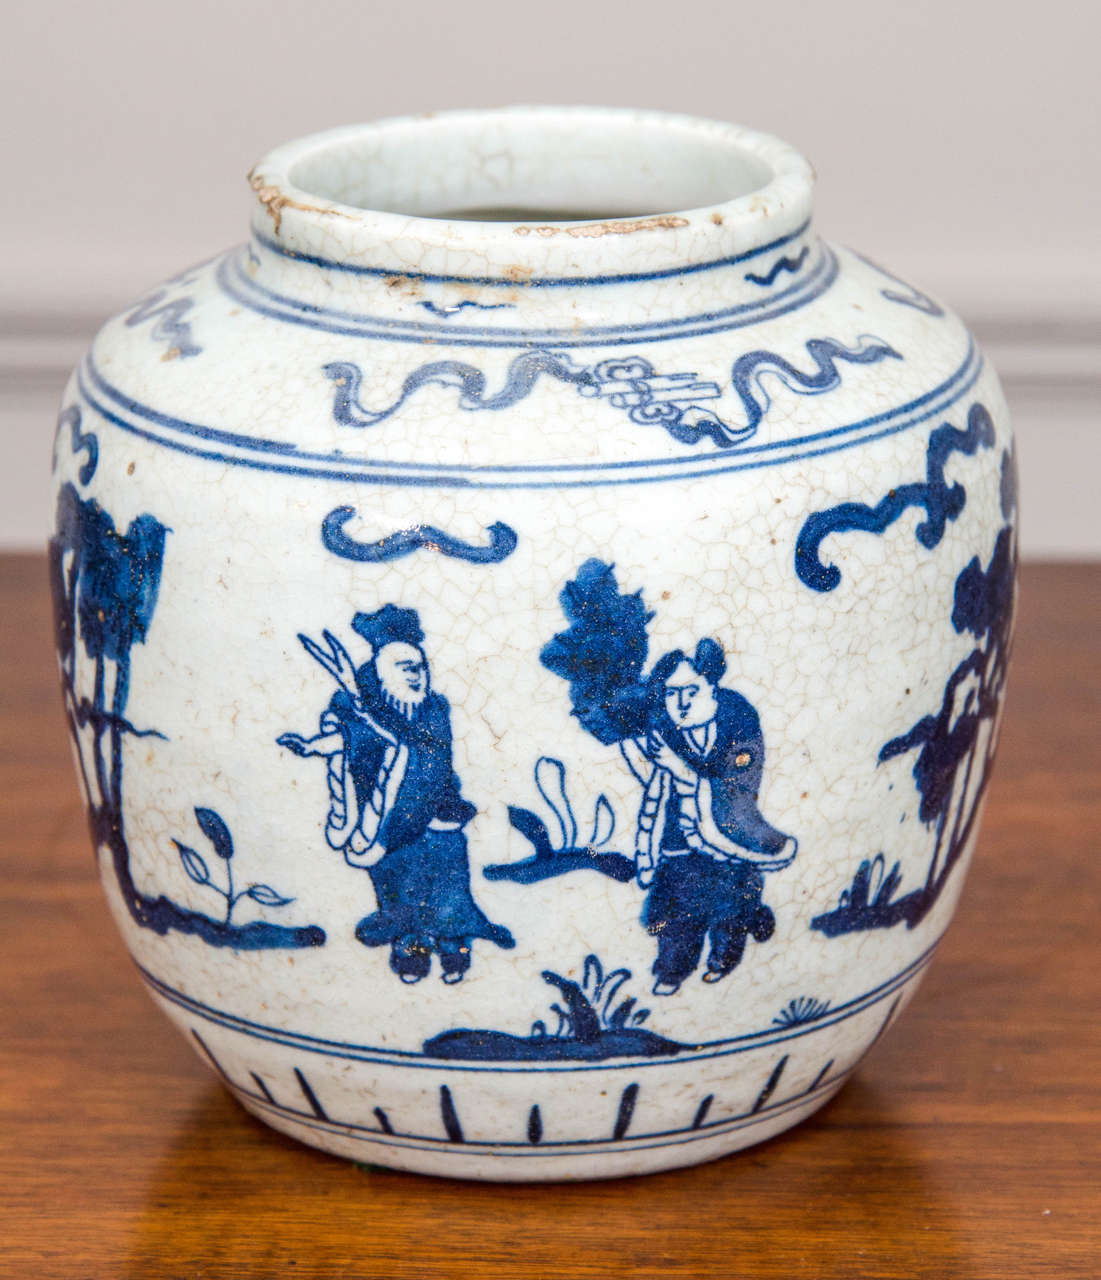 This single early 20th-century Chinese blue-and-white porcelain jar is ornamented in cobalt blue with figures in an abstracted landscape.